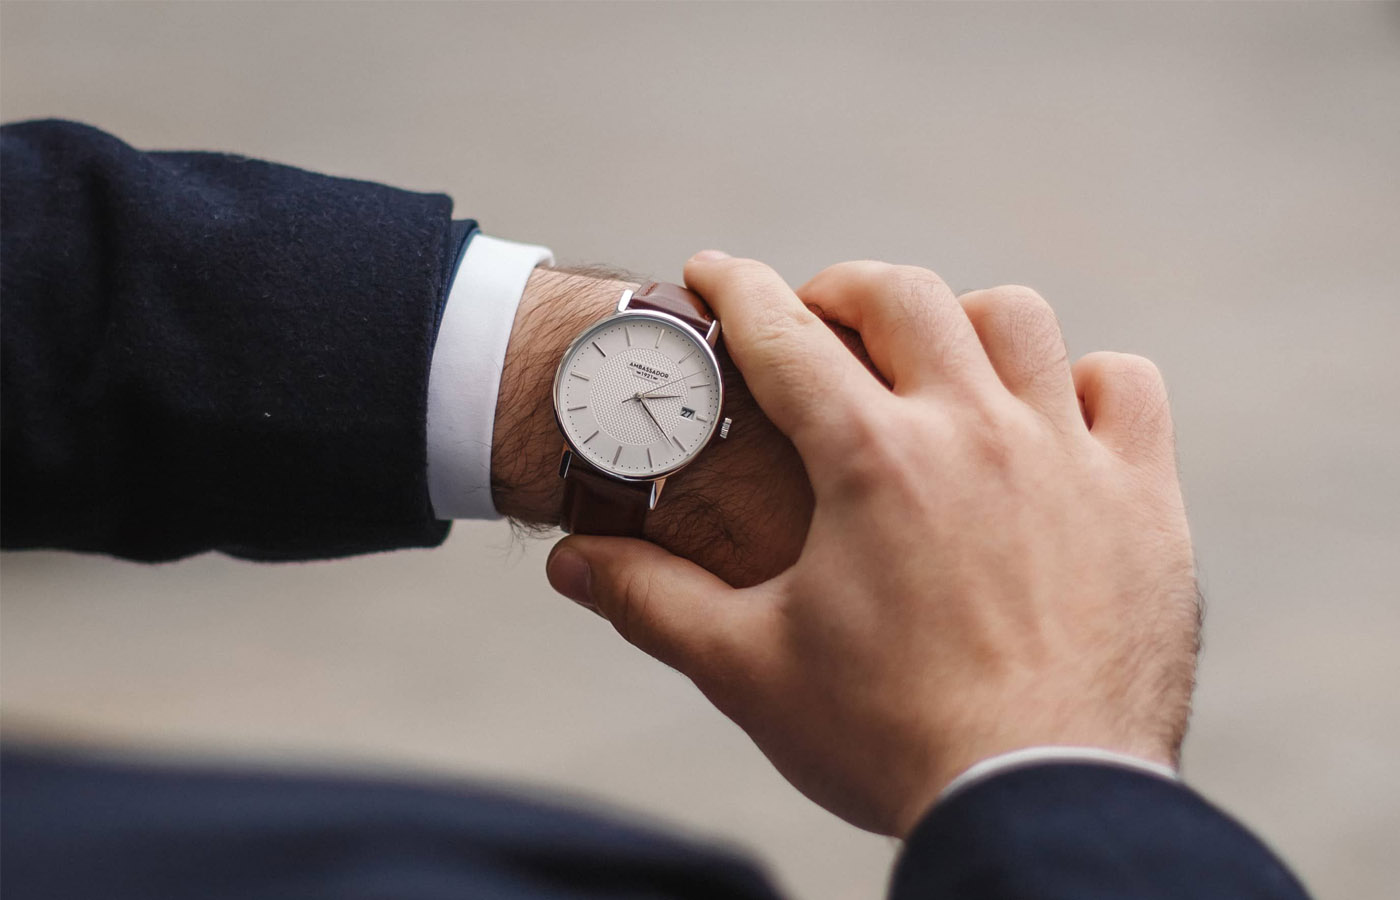 Why Do People Wear Watches On Their Left Hand?